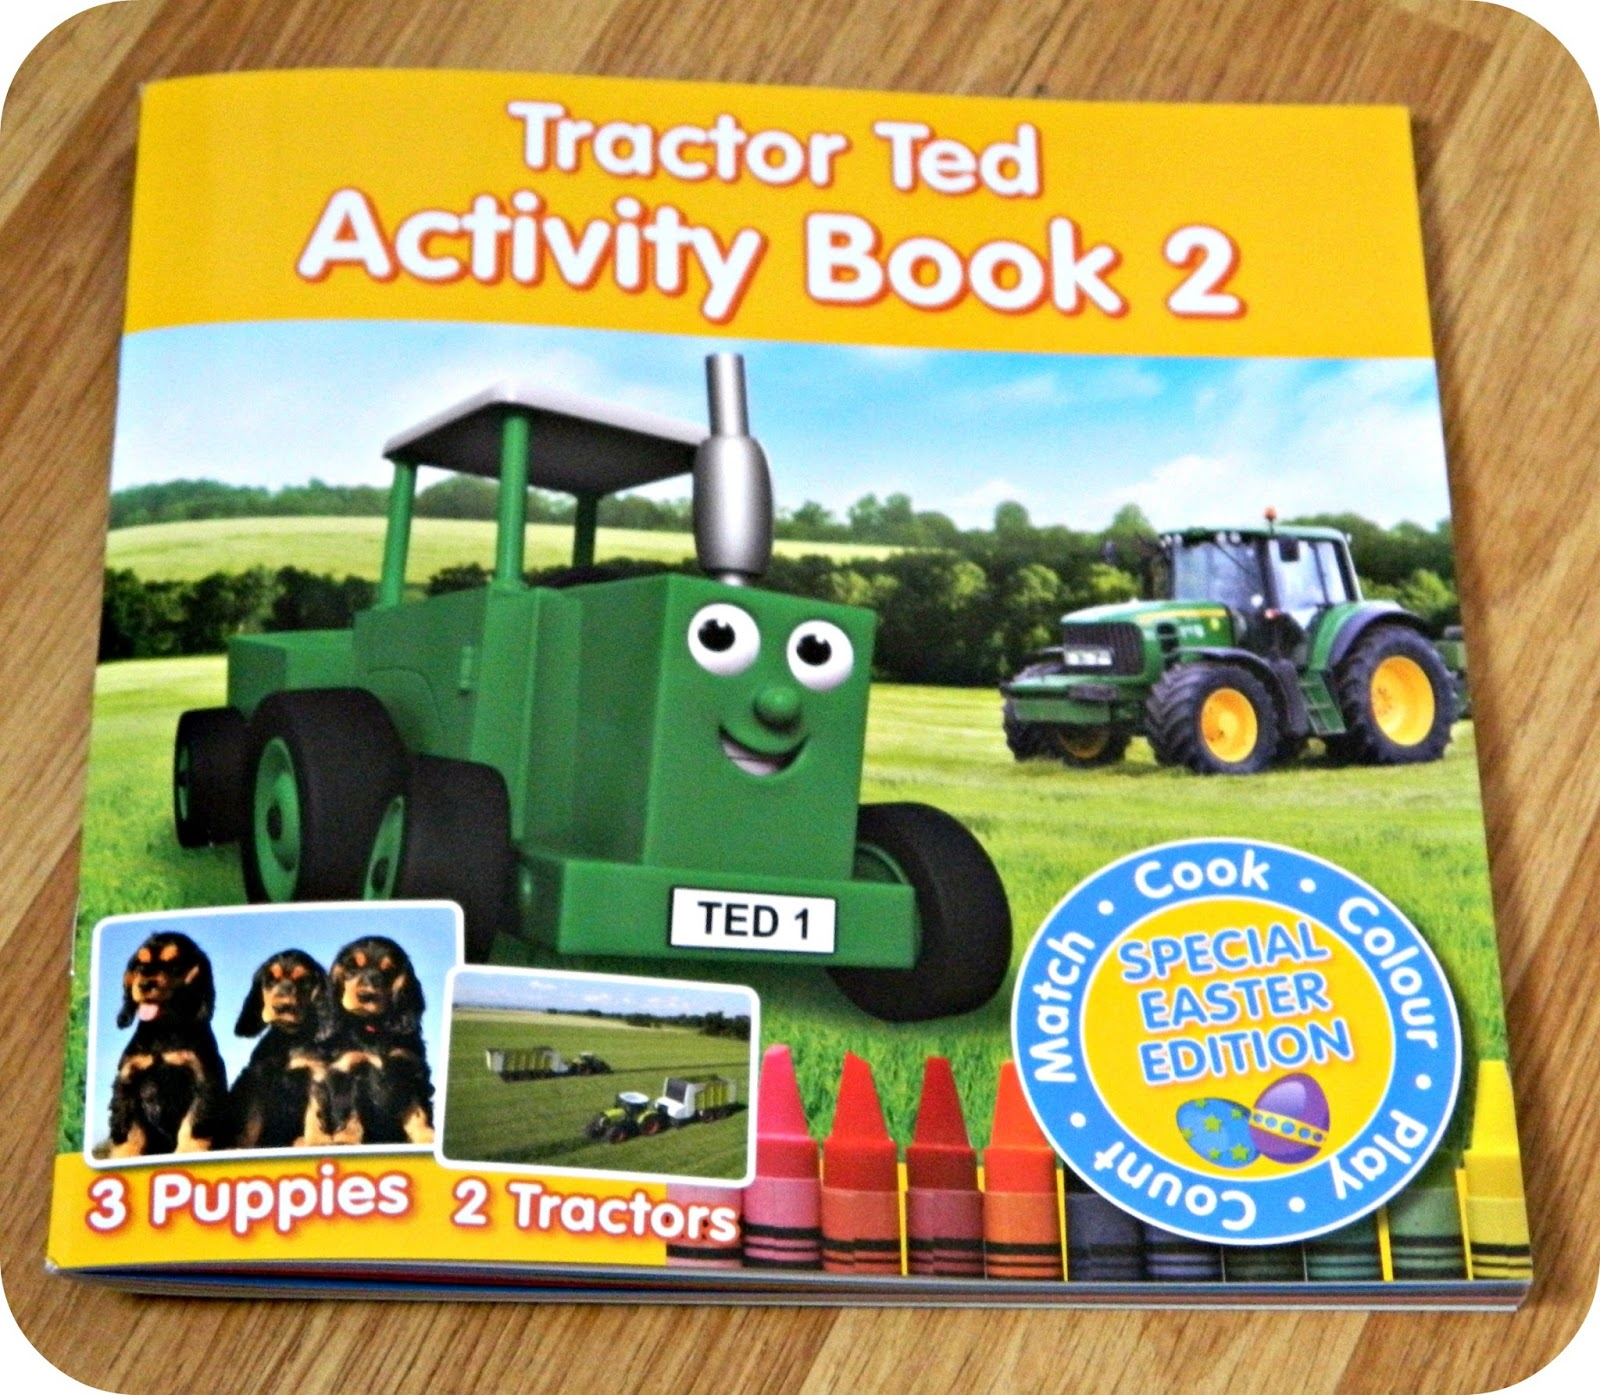 Tractor Ted Activity Book 2 Easter